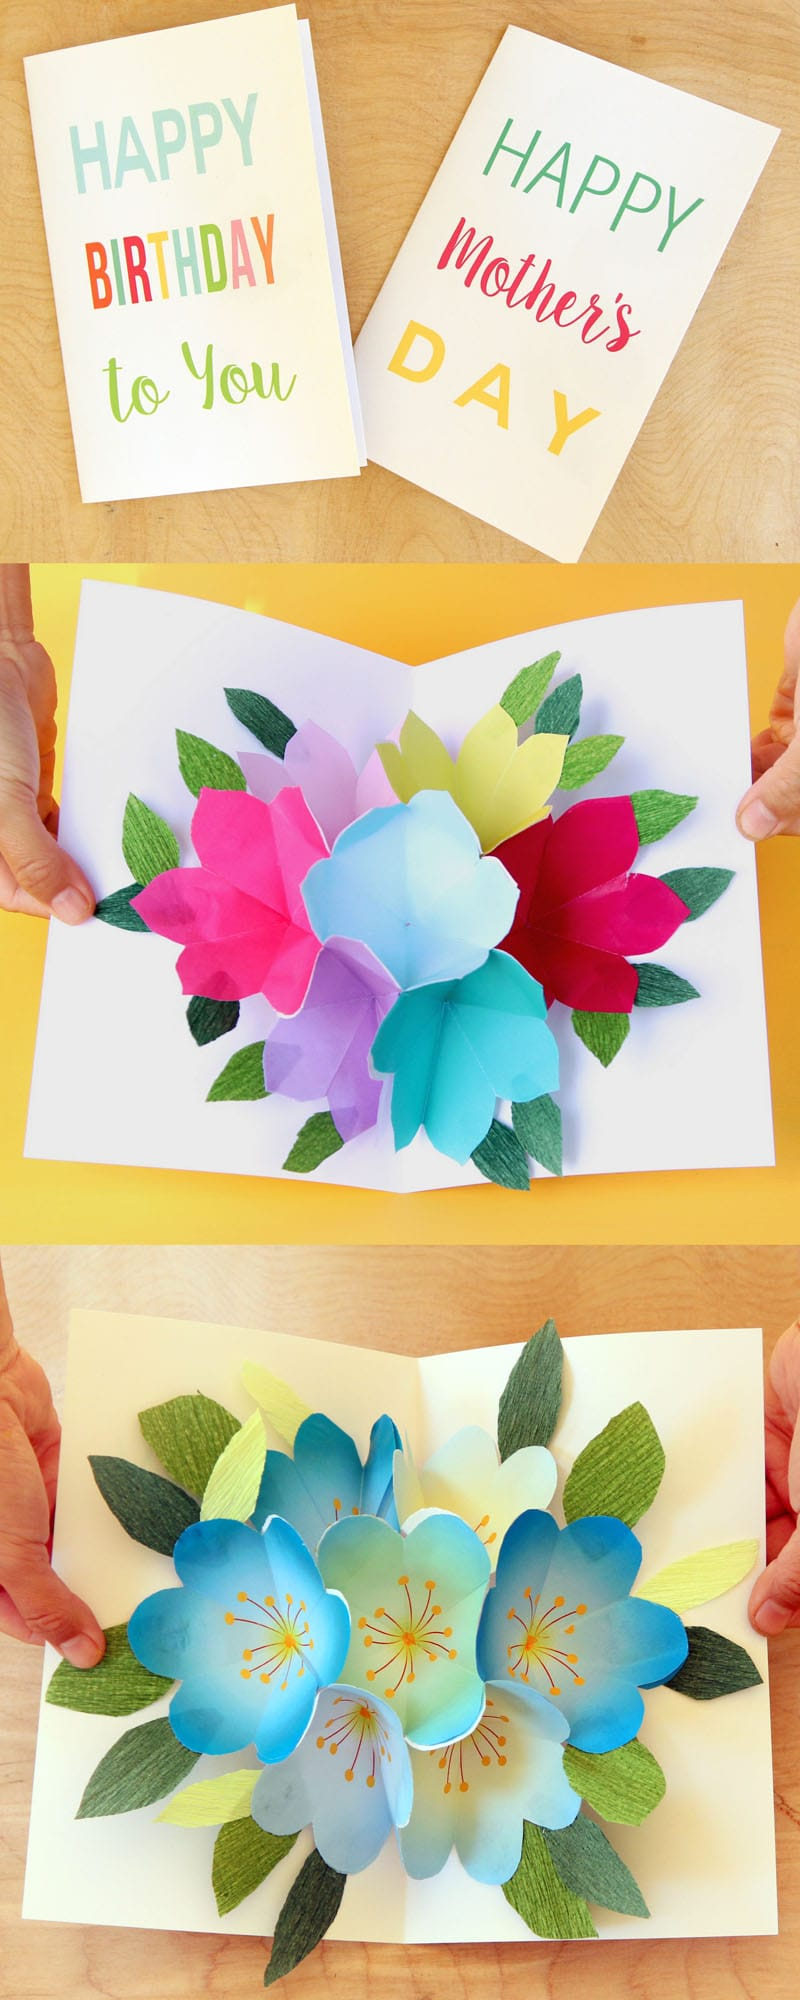 Free printable happy birthday card with pop up bouquet a piece of you can make this easy and free printable birthday card in less than an hour oh and the best part a big bouquet pops right out when your loved one opens bookmarktalkfo Image collections